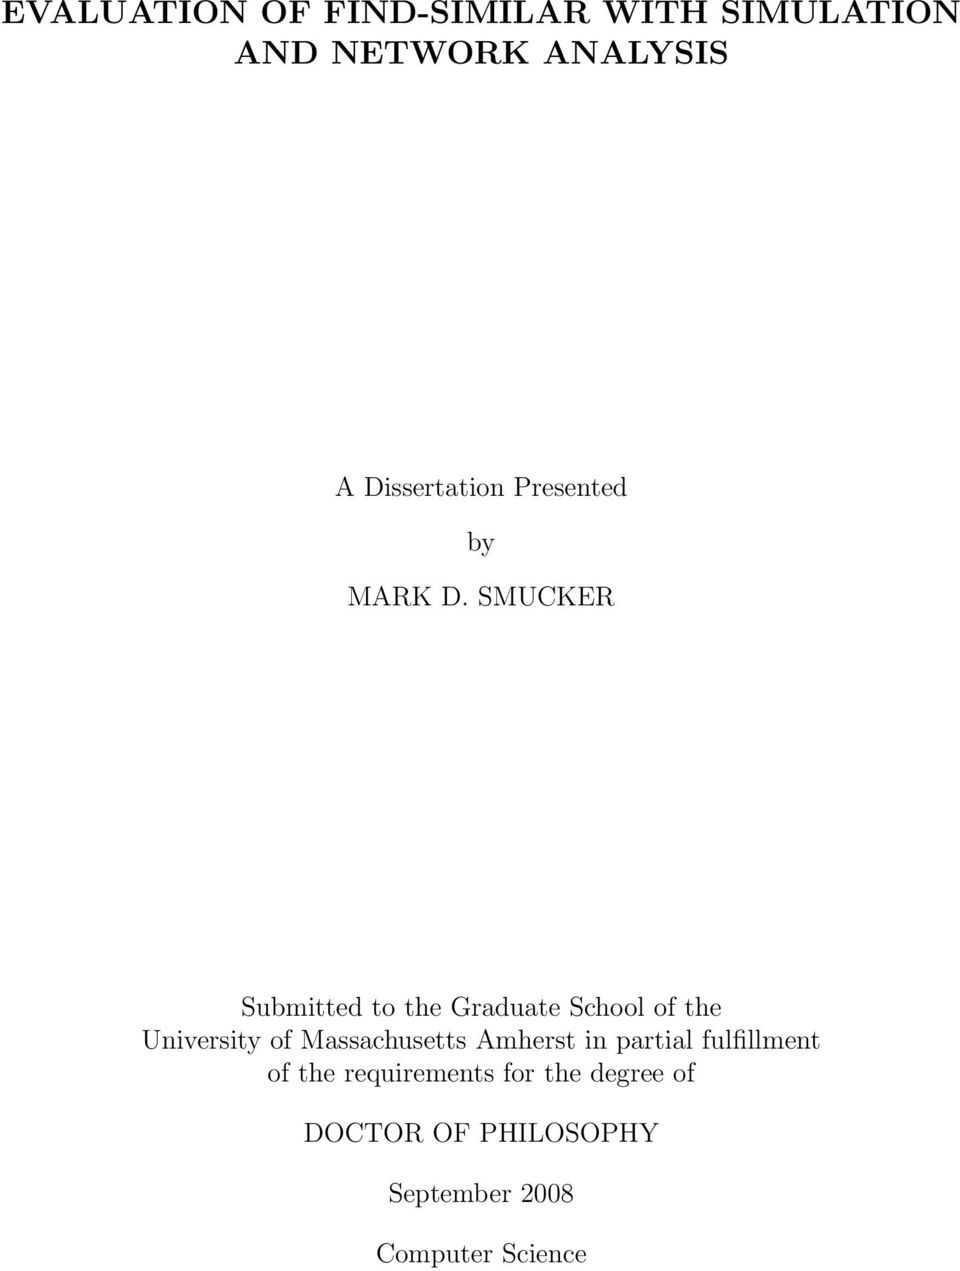 SMUCKER Submitted to the Graduate School of the University of